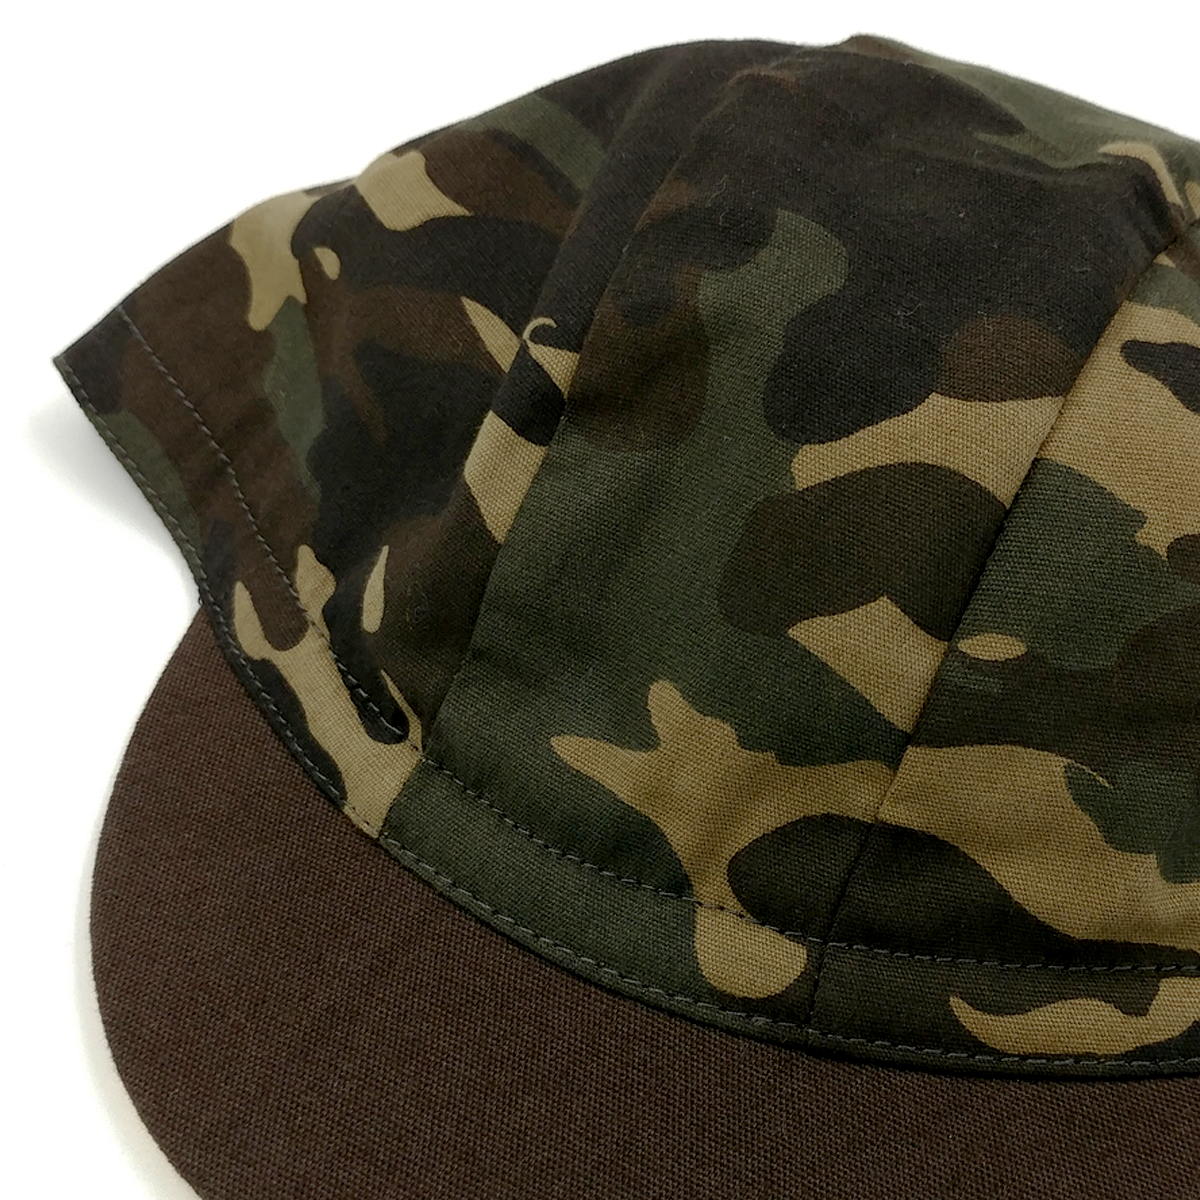 cycling cap - camo3panel4